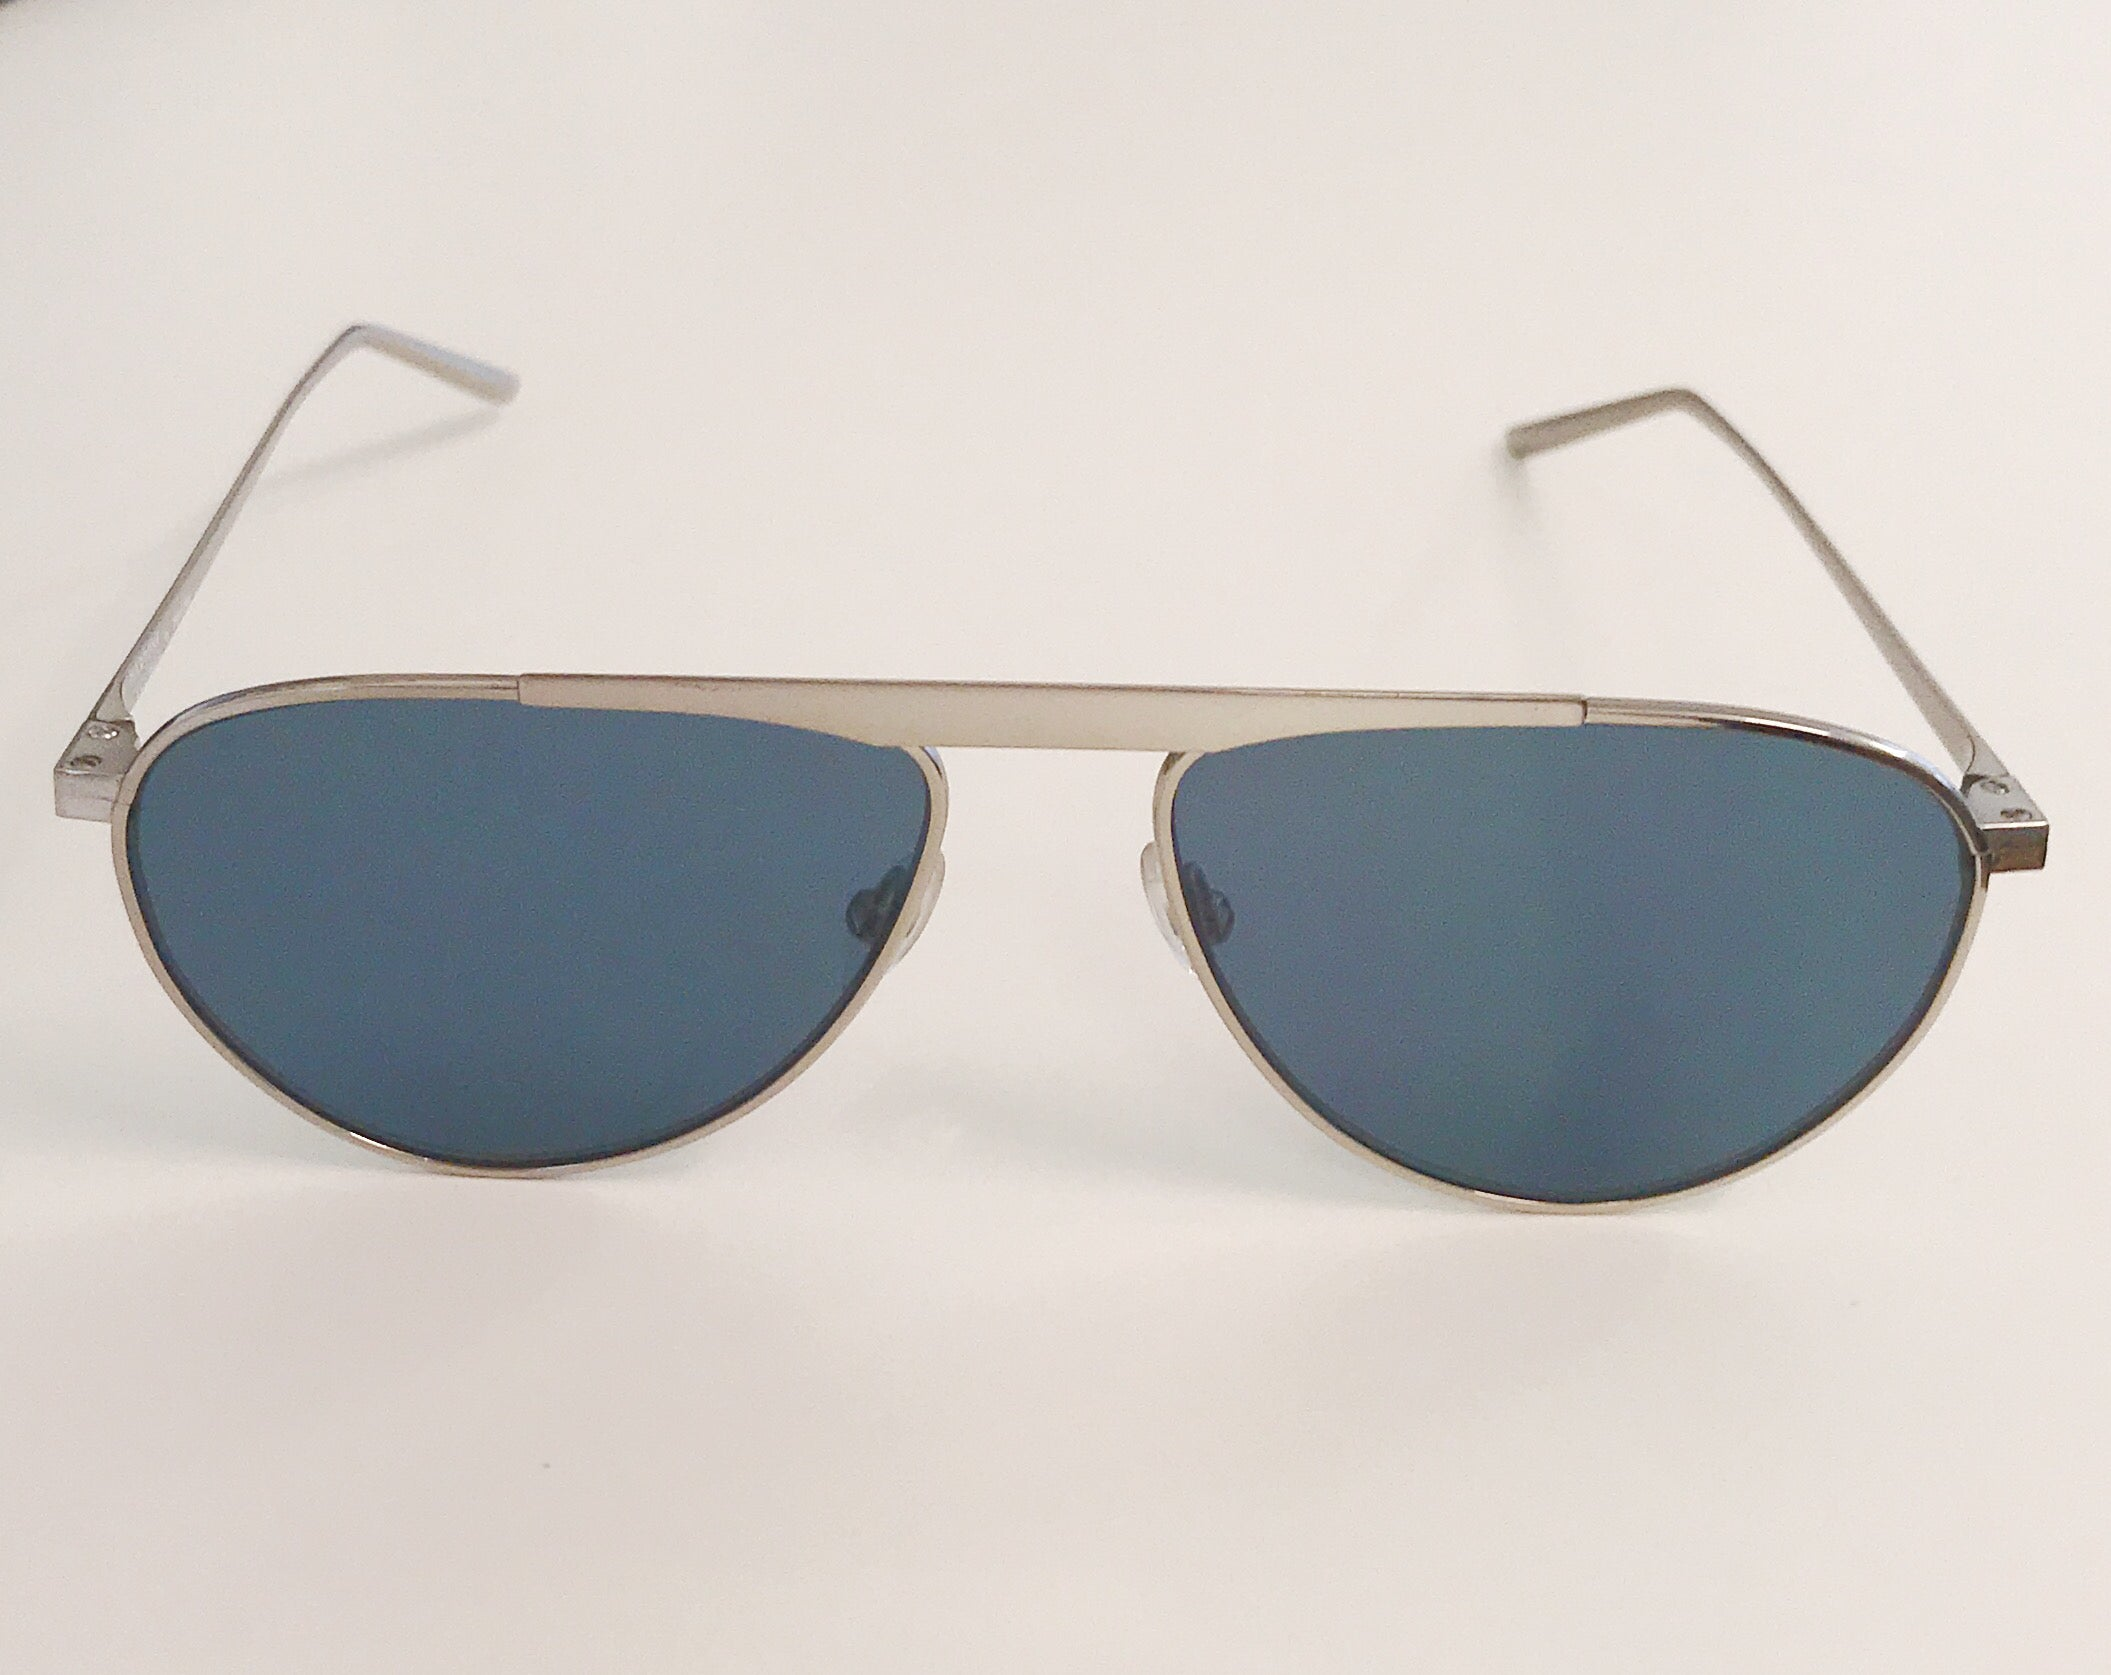 Eric Sunglasses by Peter & May